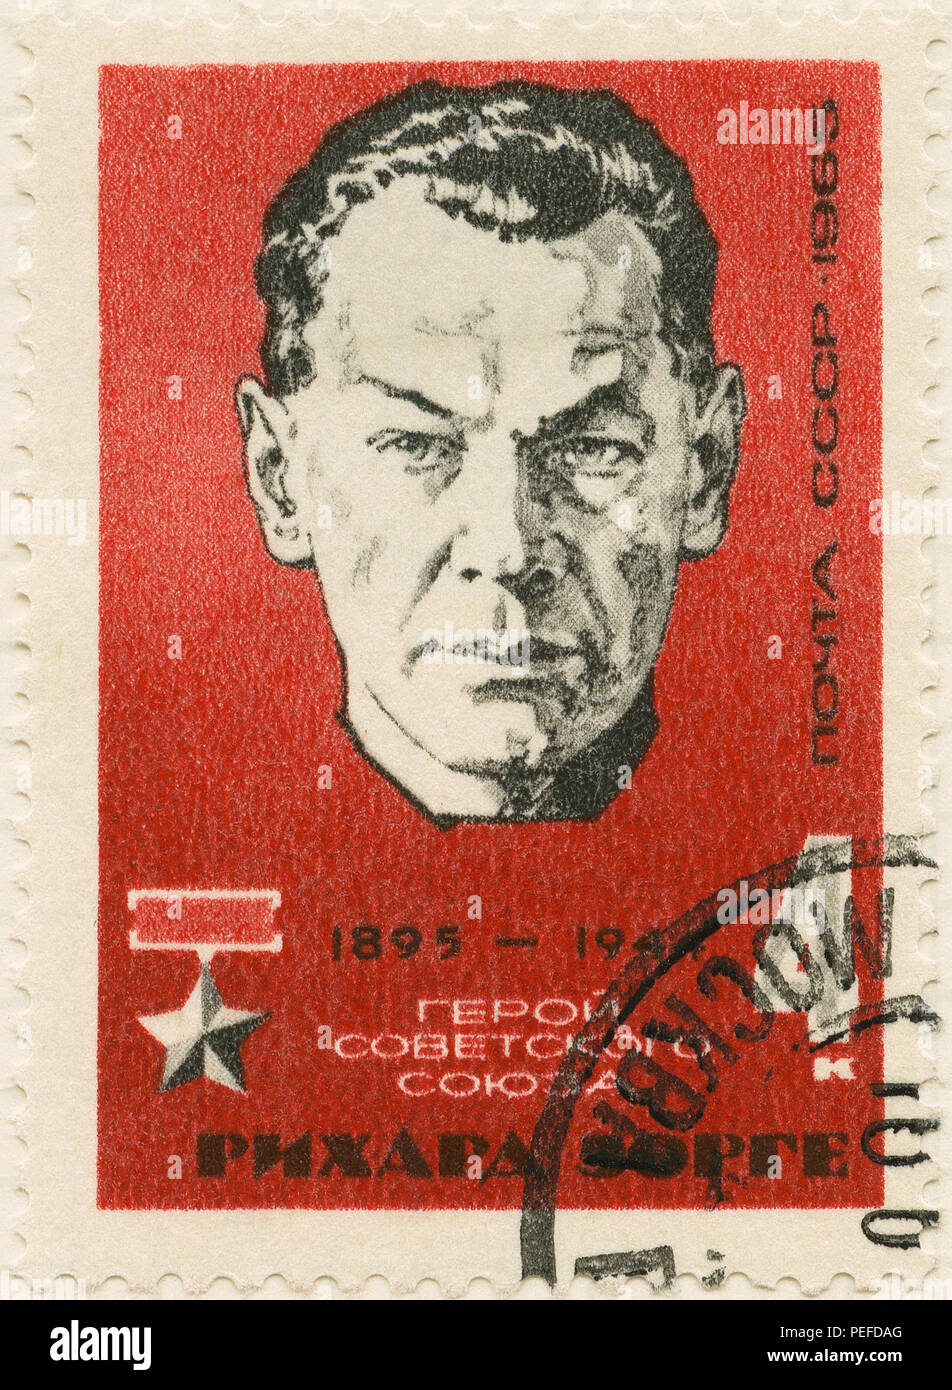 Who was Richard Sorge Photo and biography of the Soviet intelligence officer 75